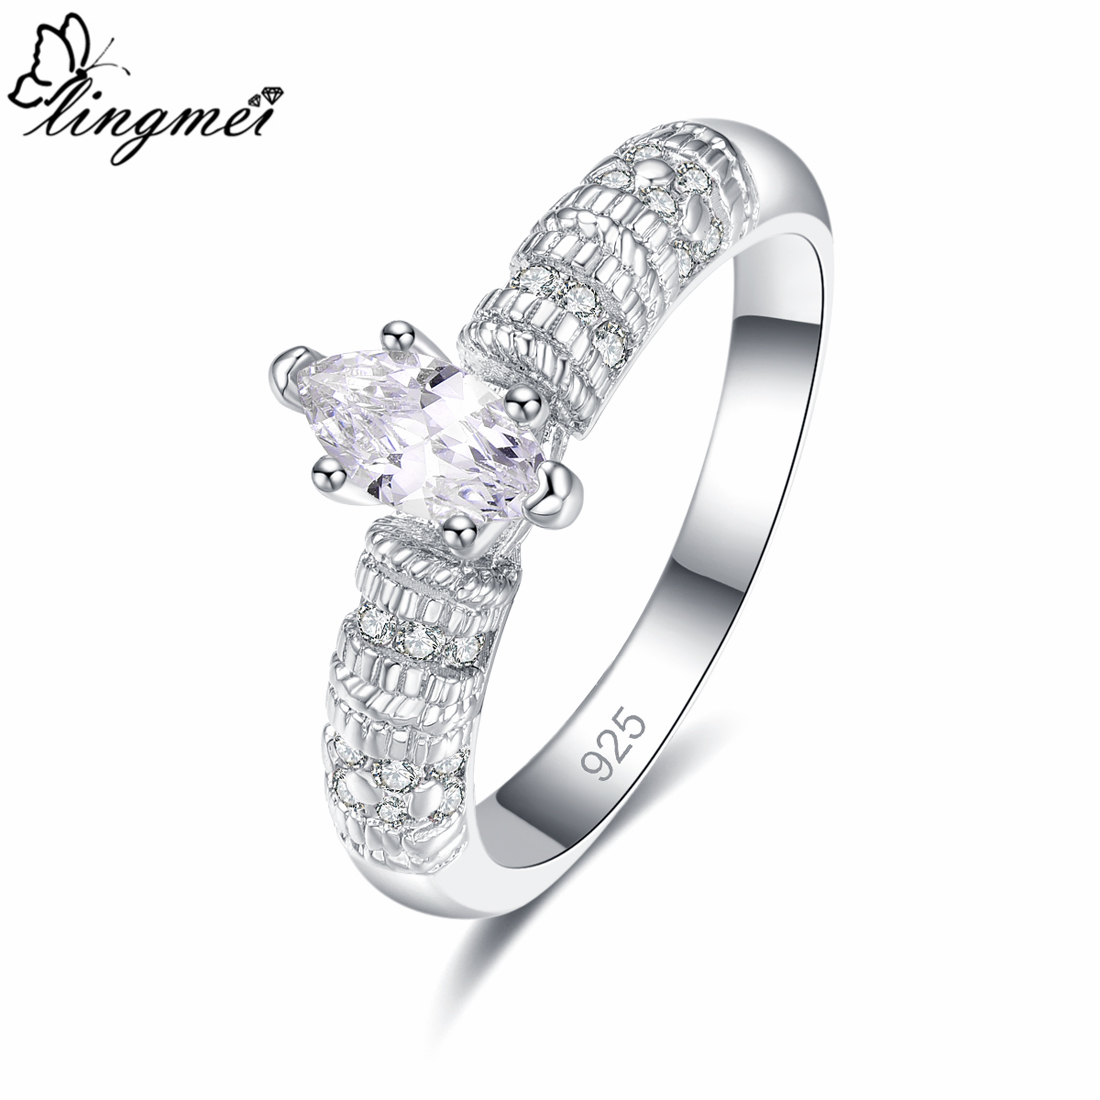 Lingmei Fantastic Engagement Marquise Cut White Cubic Zircon Silver Ring for Women Wedding Jewelry Size 6 7 8 9 Anniversary Gift